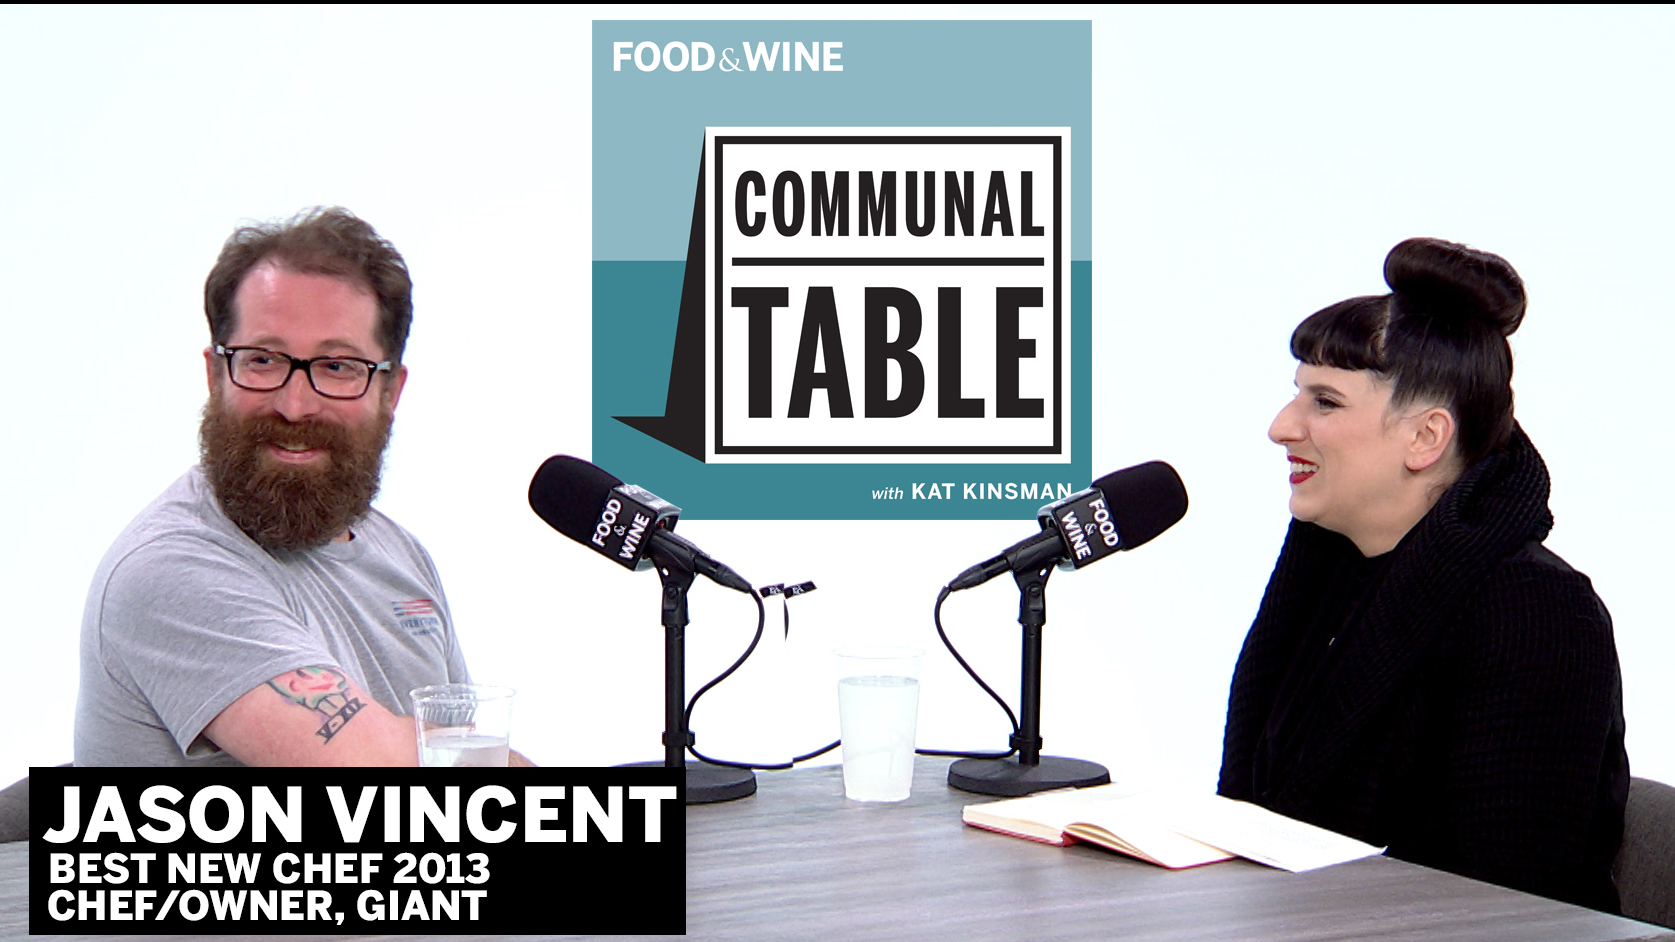 jason-vincent-communal-table-FT-blog052319.jpg